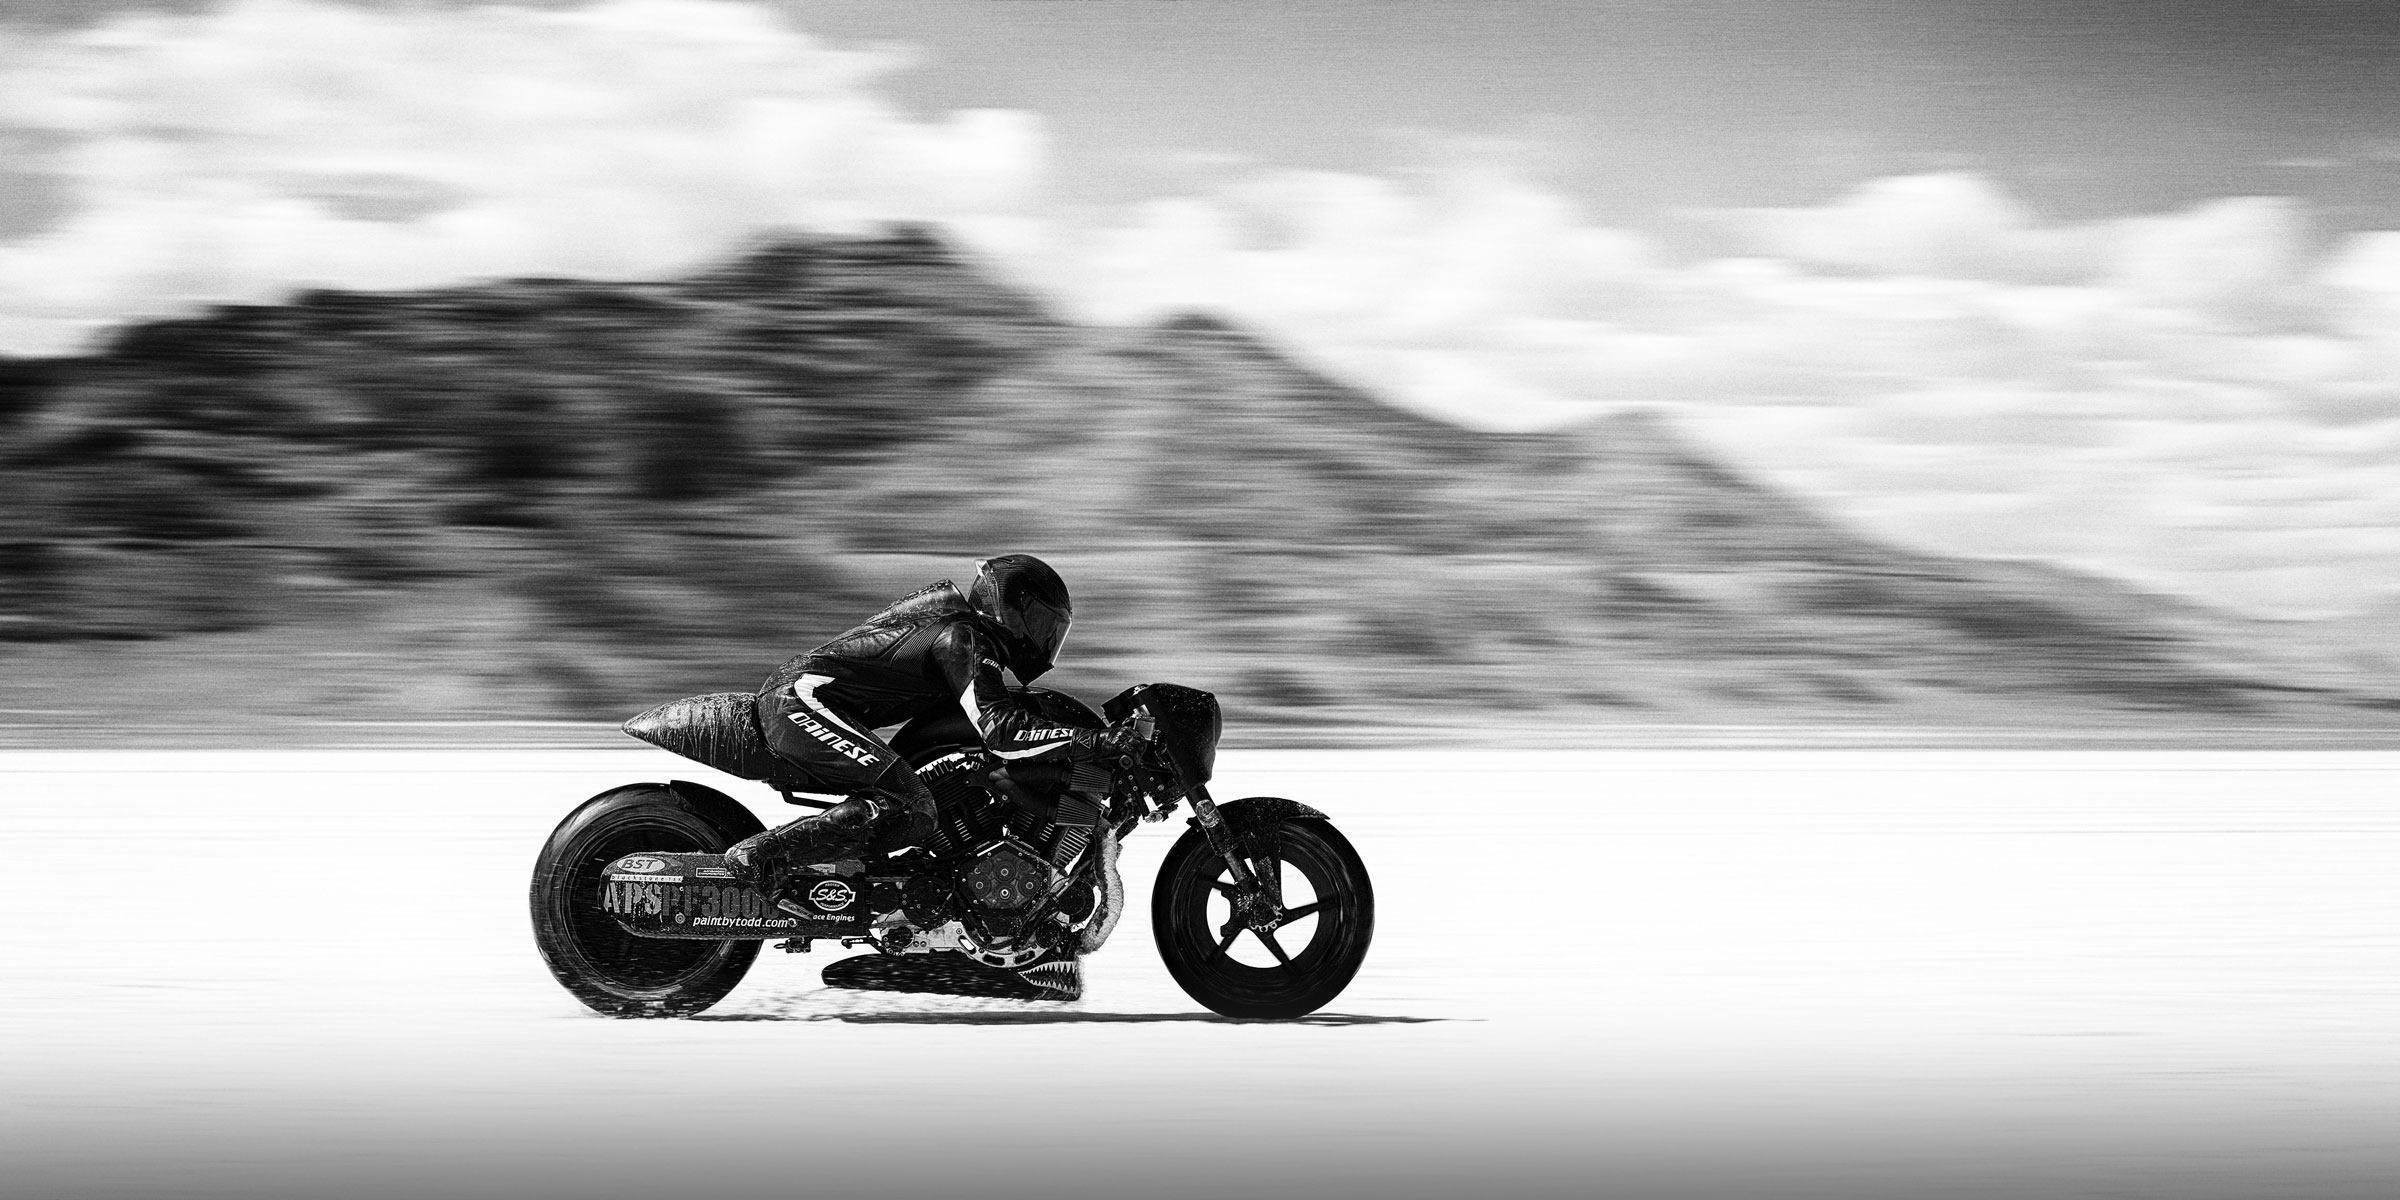 AMA Land Speed Record Top Speed: 176.458 MPH Average Speed: 171.005 MPH  Motorcycle: